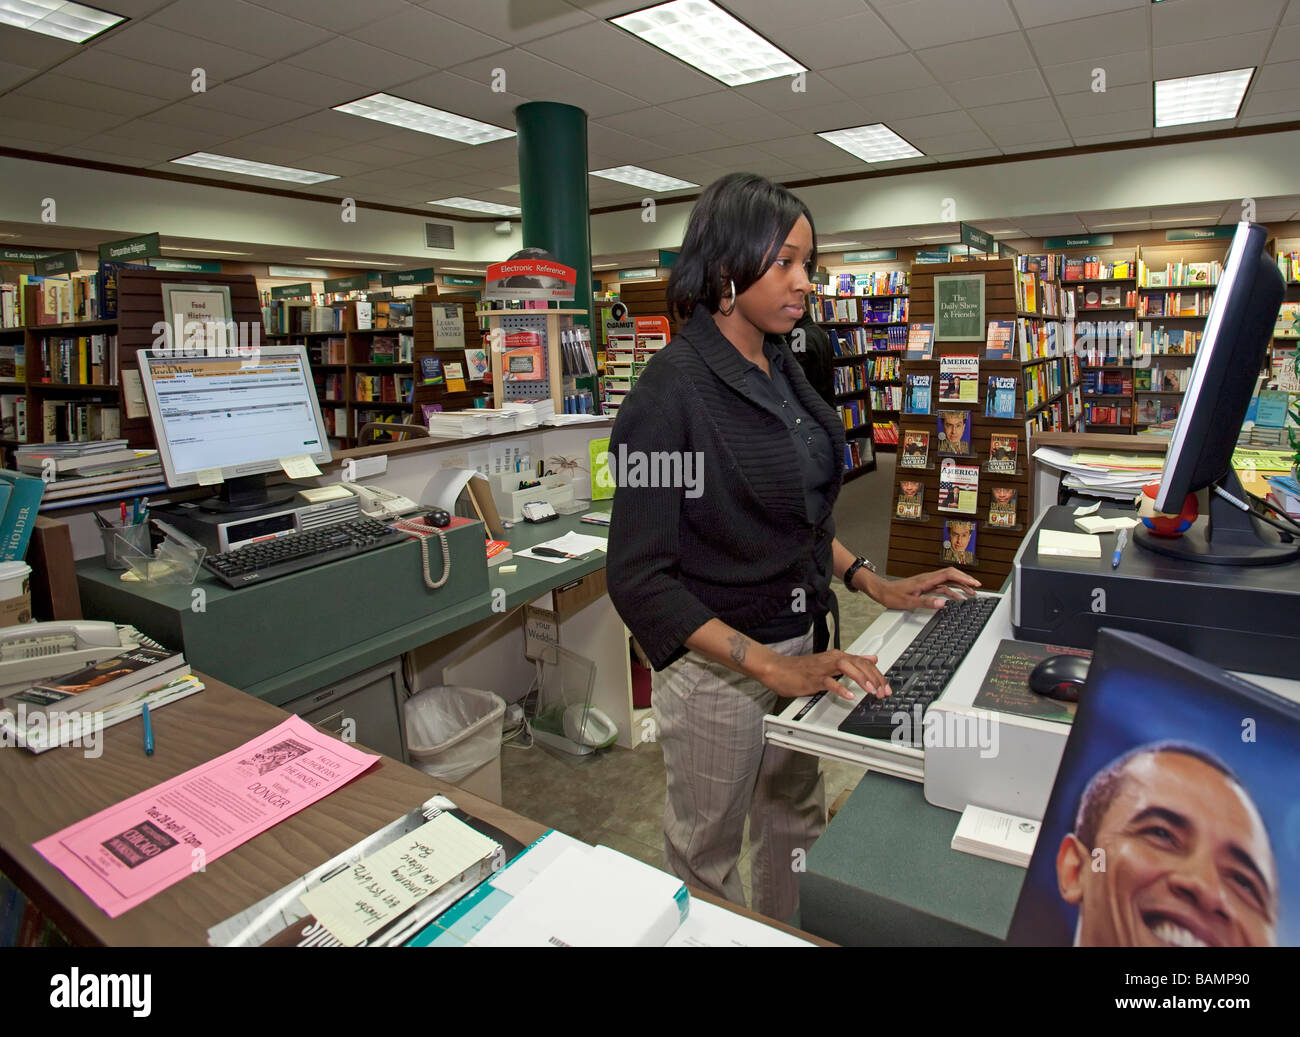 Worker at University of Chicago Bookstore - Stock Image